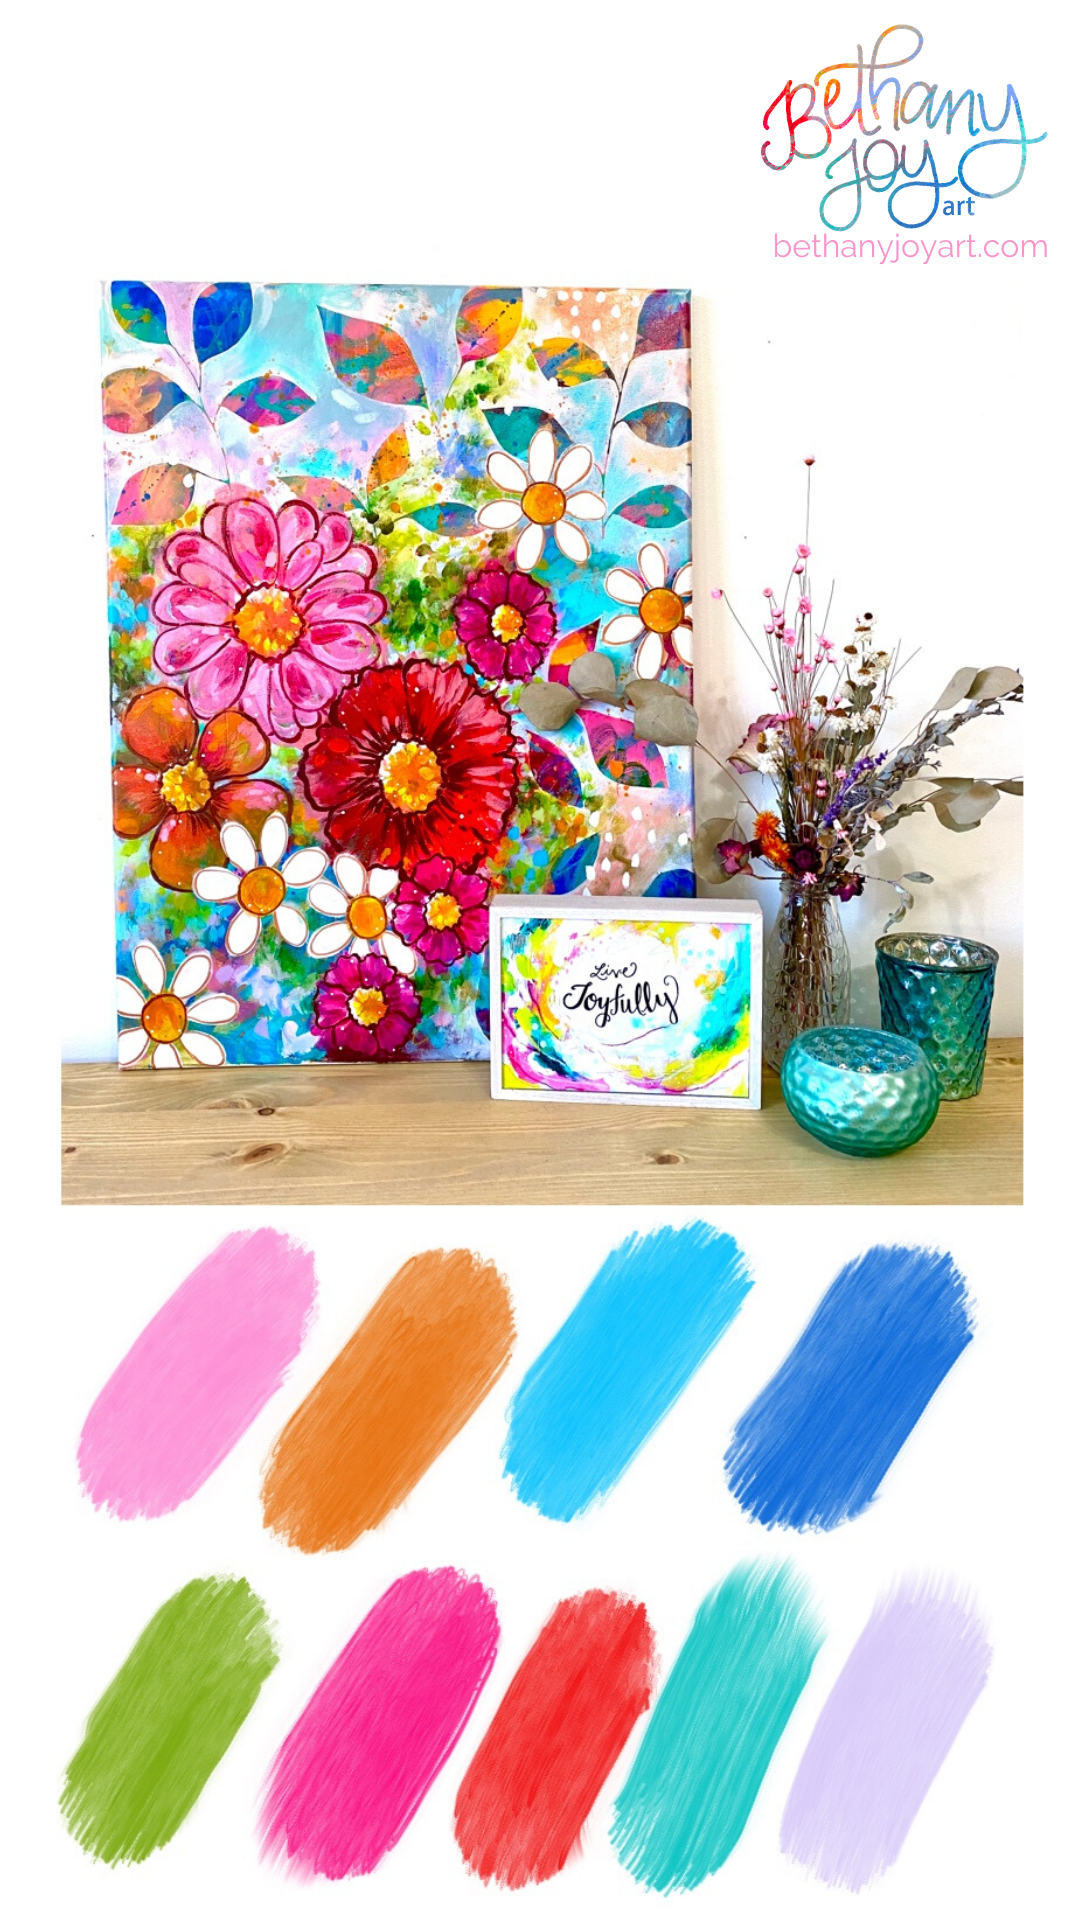 Vibrant color scheme, colorful home decor, bright color swatches by Bethany Joy Art #colorswatches #brightcolors #colorfulhomedecor #floralart